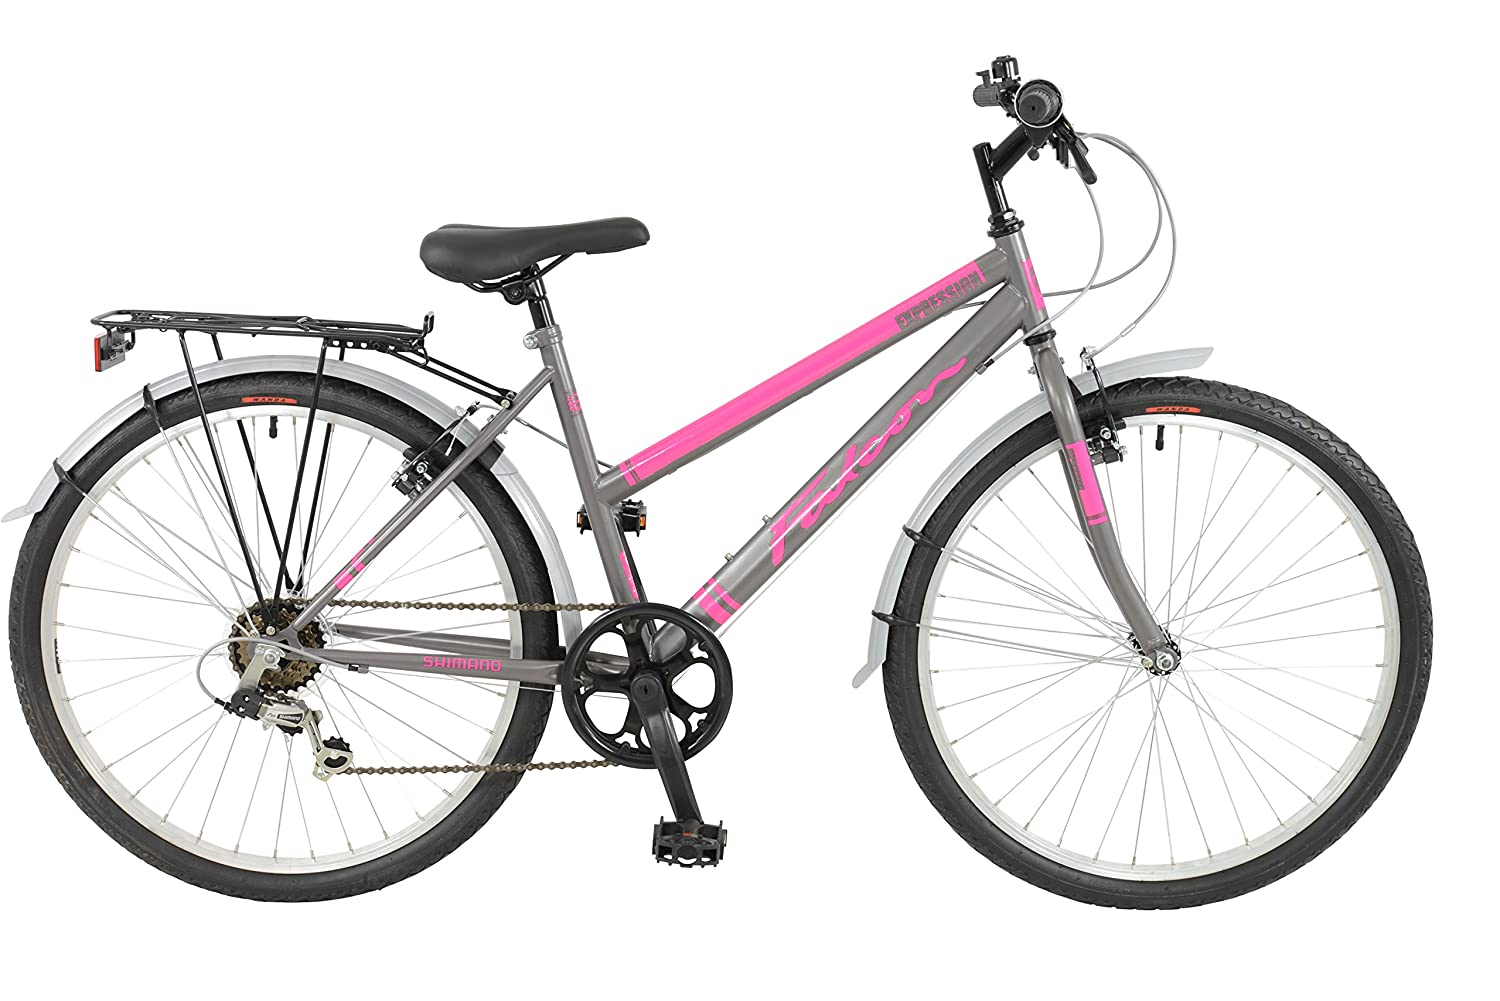 FalconExpression 2016 Unisex Mountain Bike Pink/Grey, 19 inch steel frame, 6 speed strong and lightweight alloy wheel rims front and rear v-brakes 19 inch steel frame